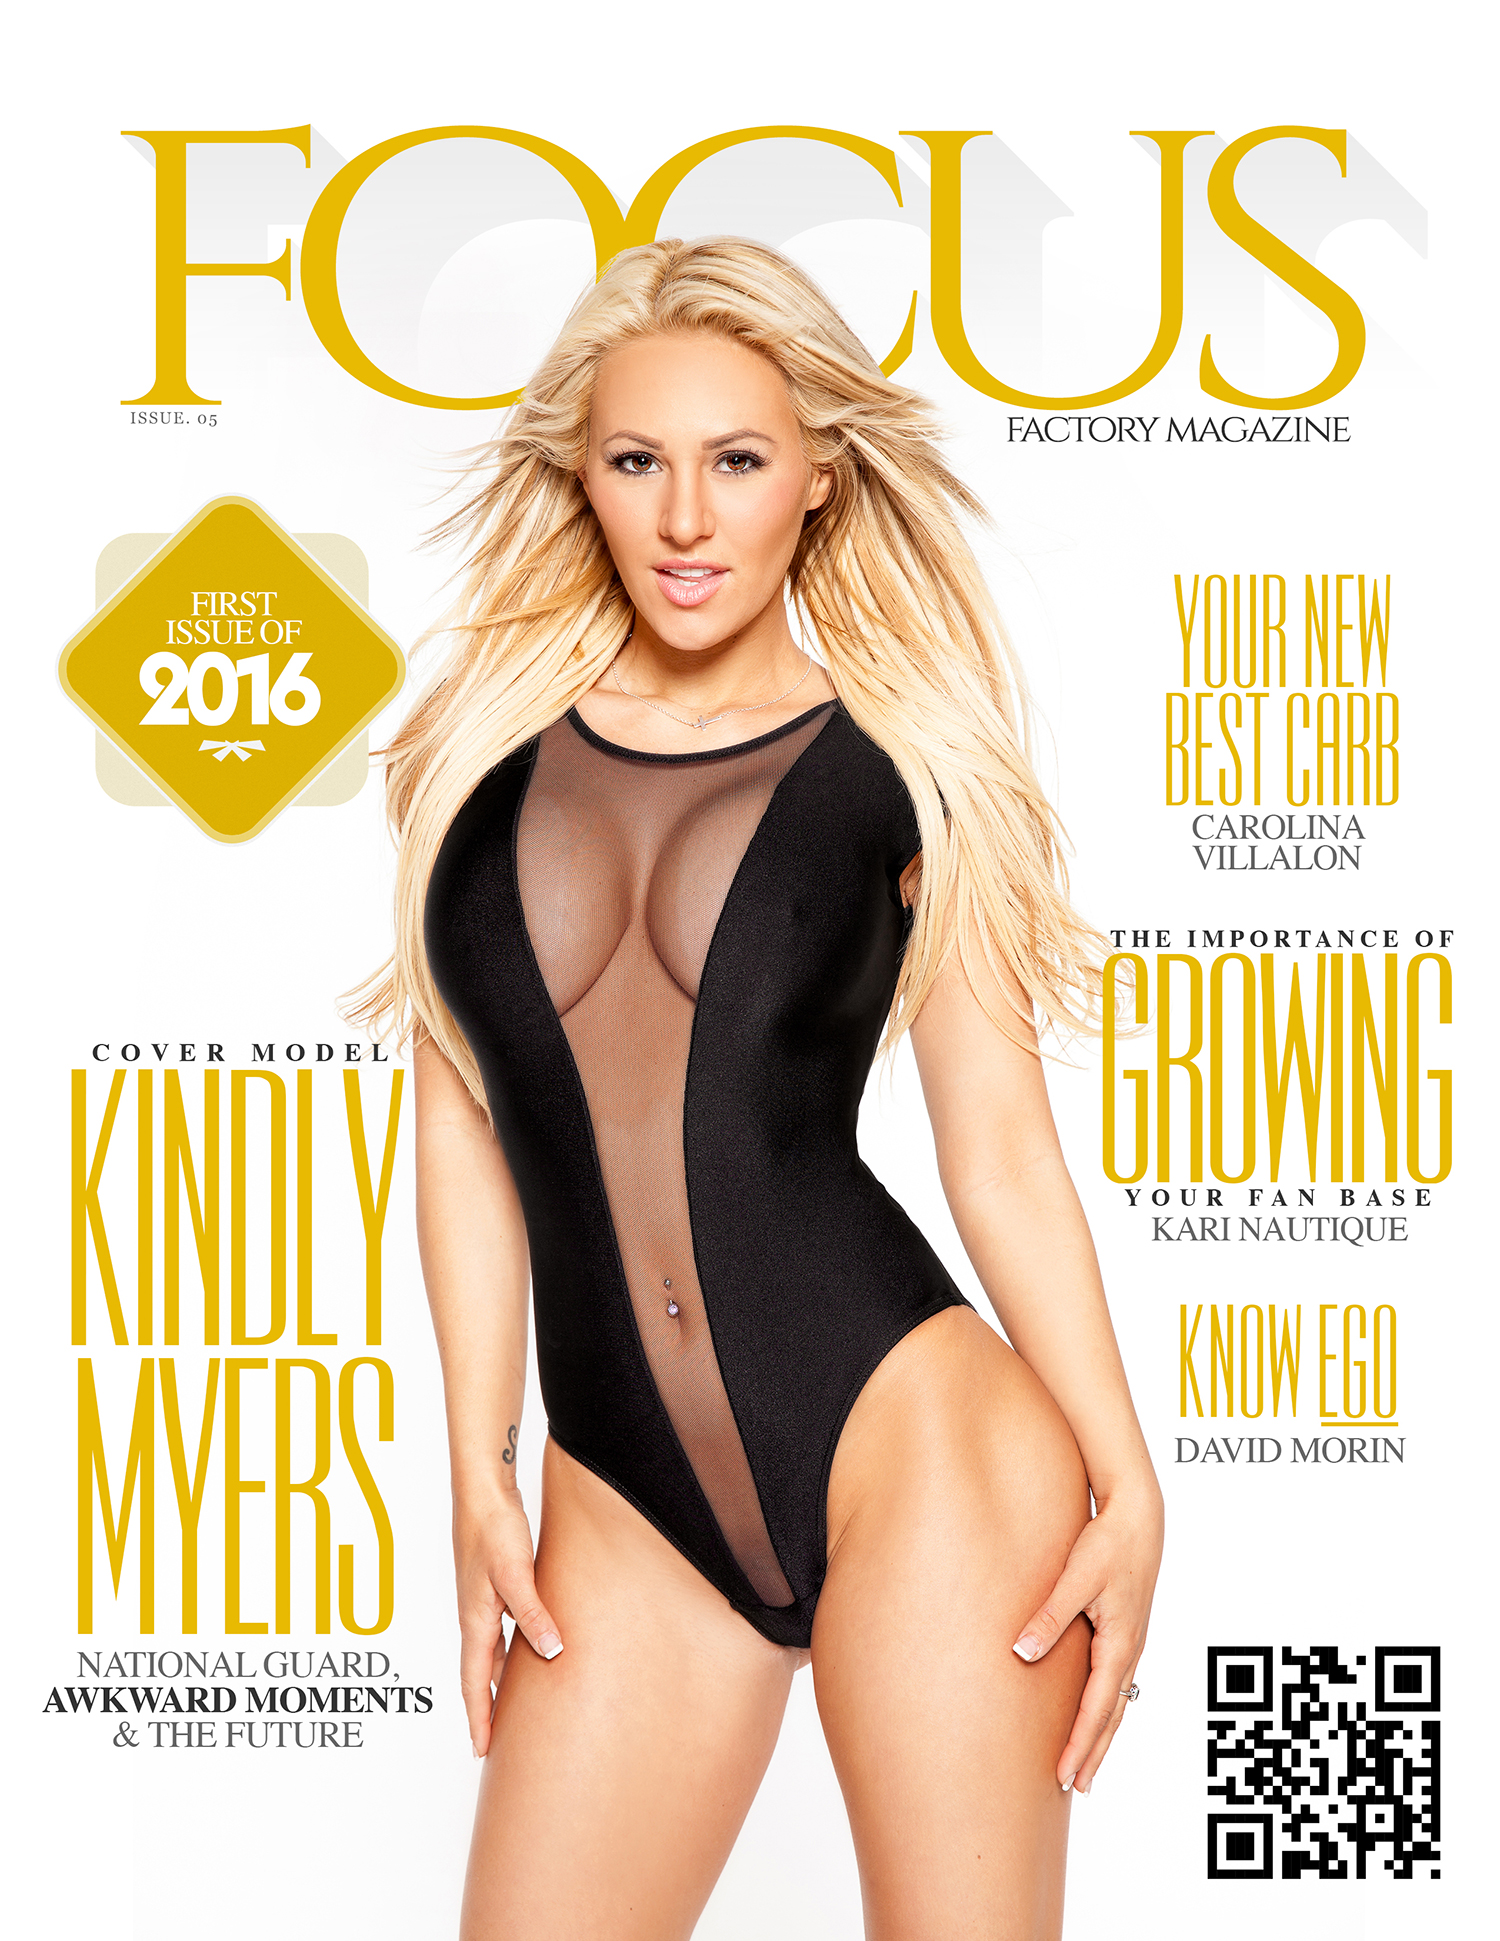 Focus-Factory-Mag-issue-5-Kindly-Myers-Small.jpg